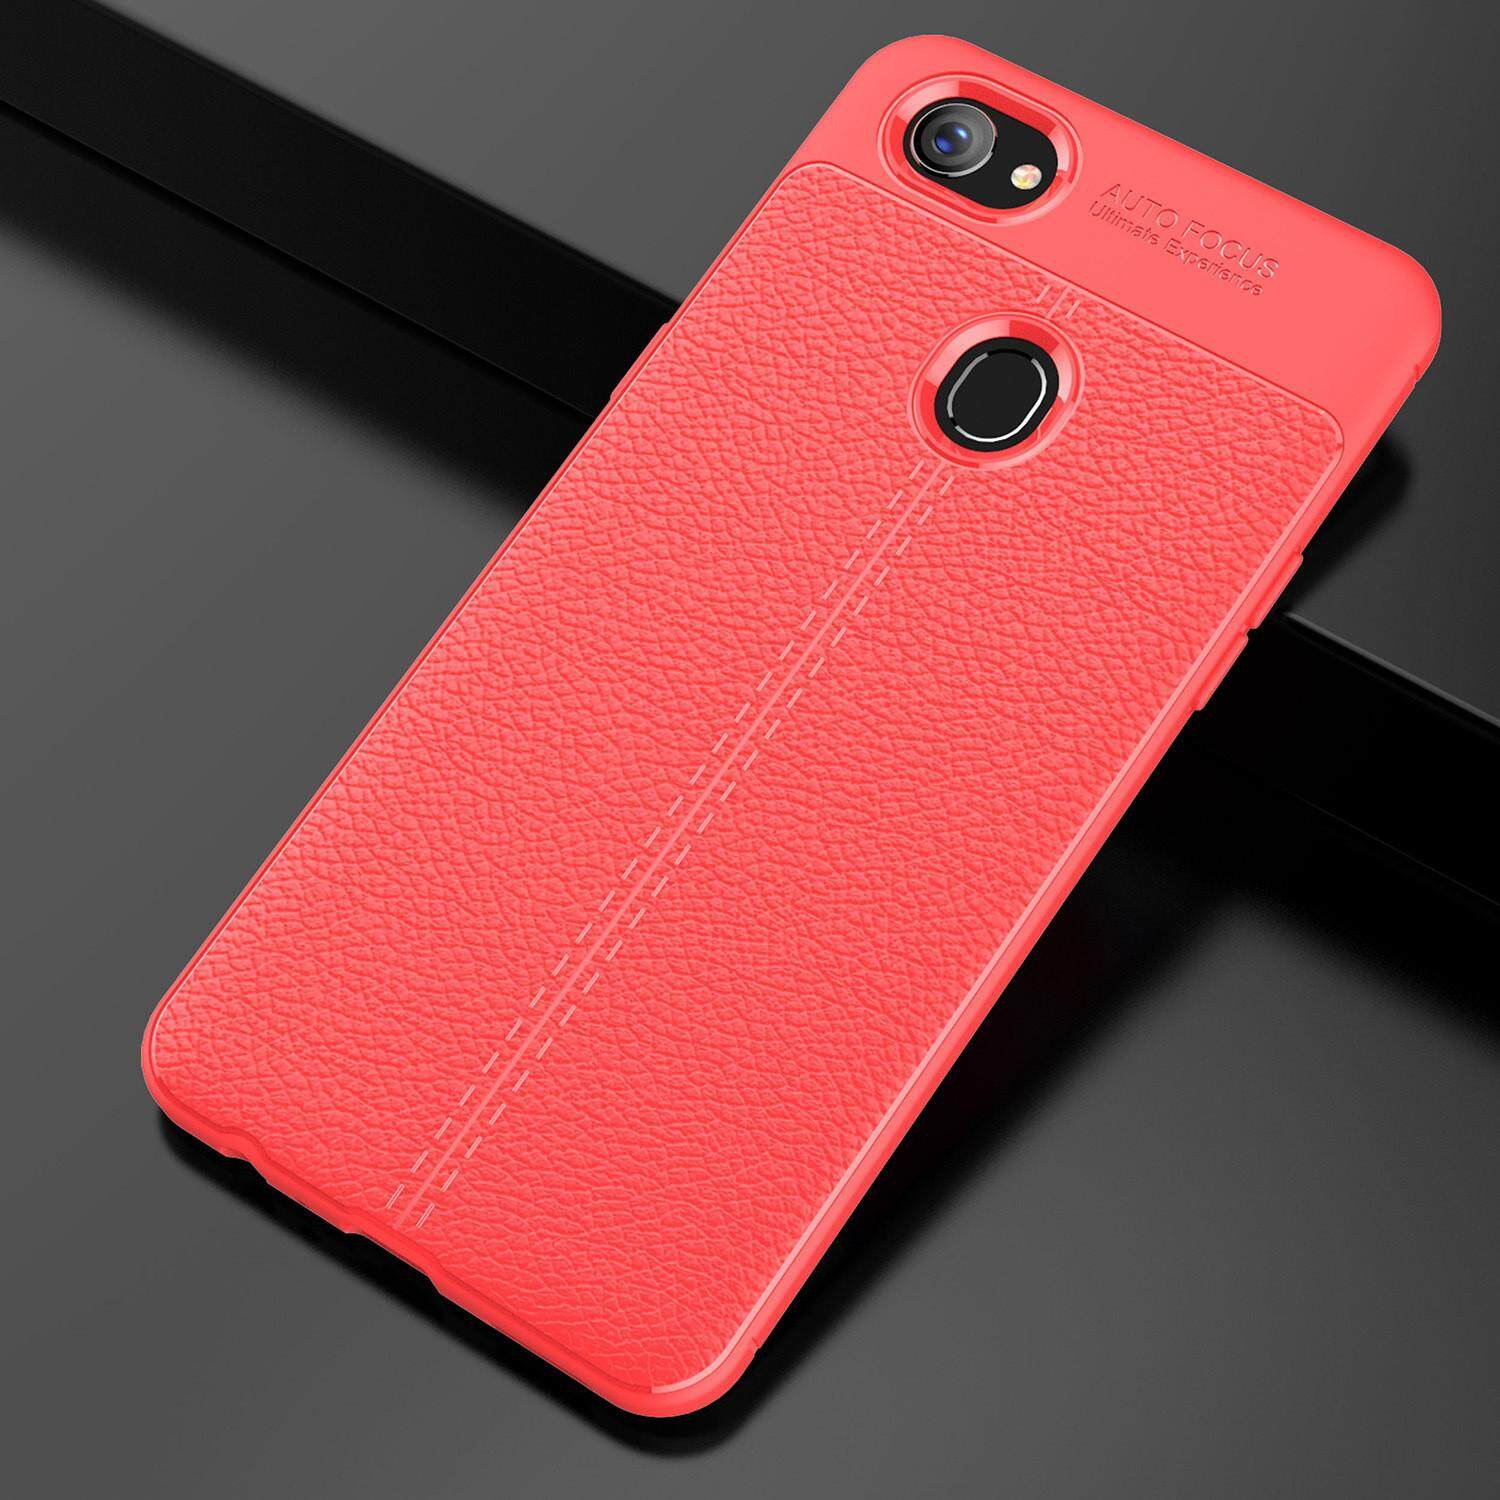 Fitur Galeno Shinning Auto Focus Metallic Case Slim Oppo Info Soft Tpu Leather F7 Cover Casing Fiber Black Blue Red